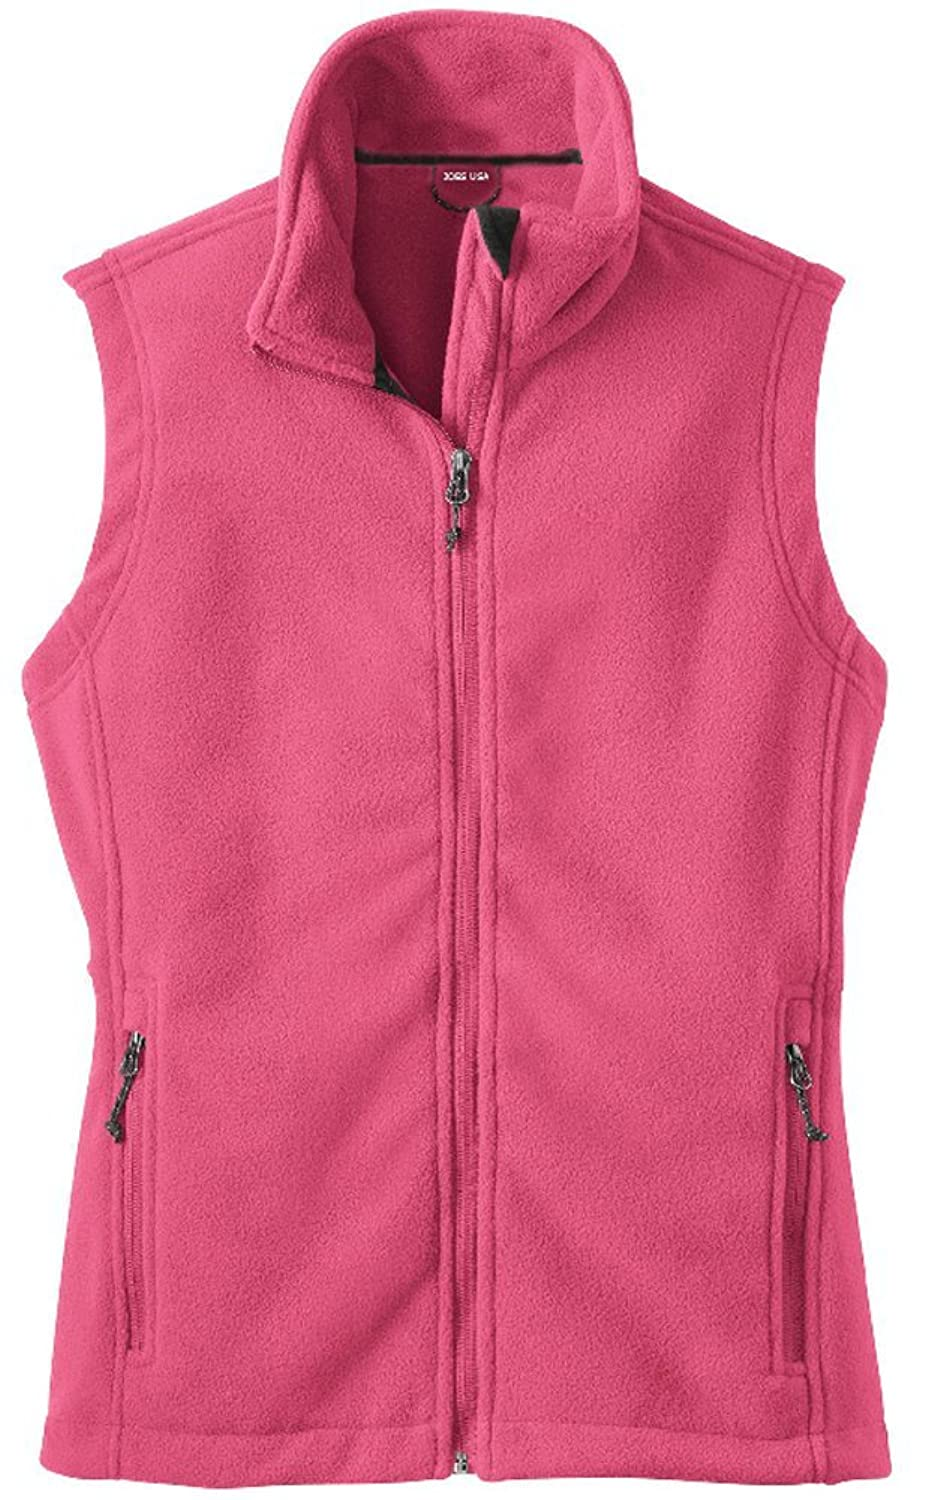 6eac568ea9dc Womens Soft and Cozy Fleece Vests in 8 Colors  Sizes XS-4XL durable service